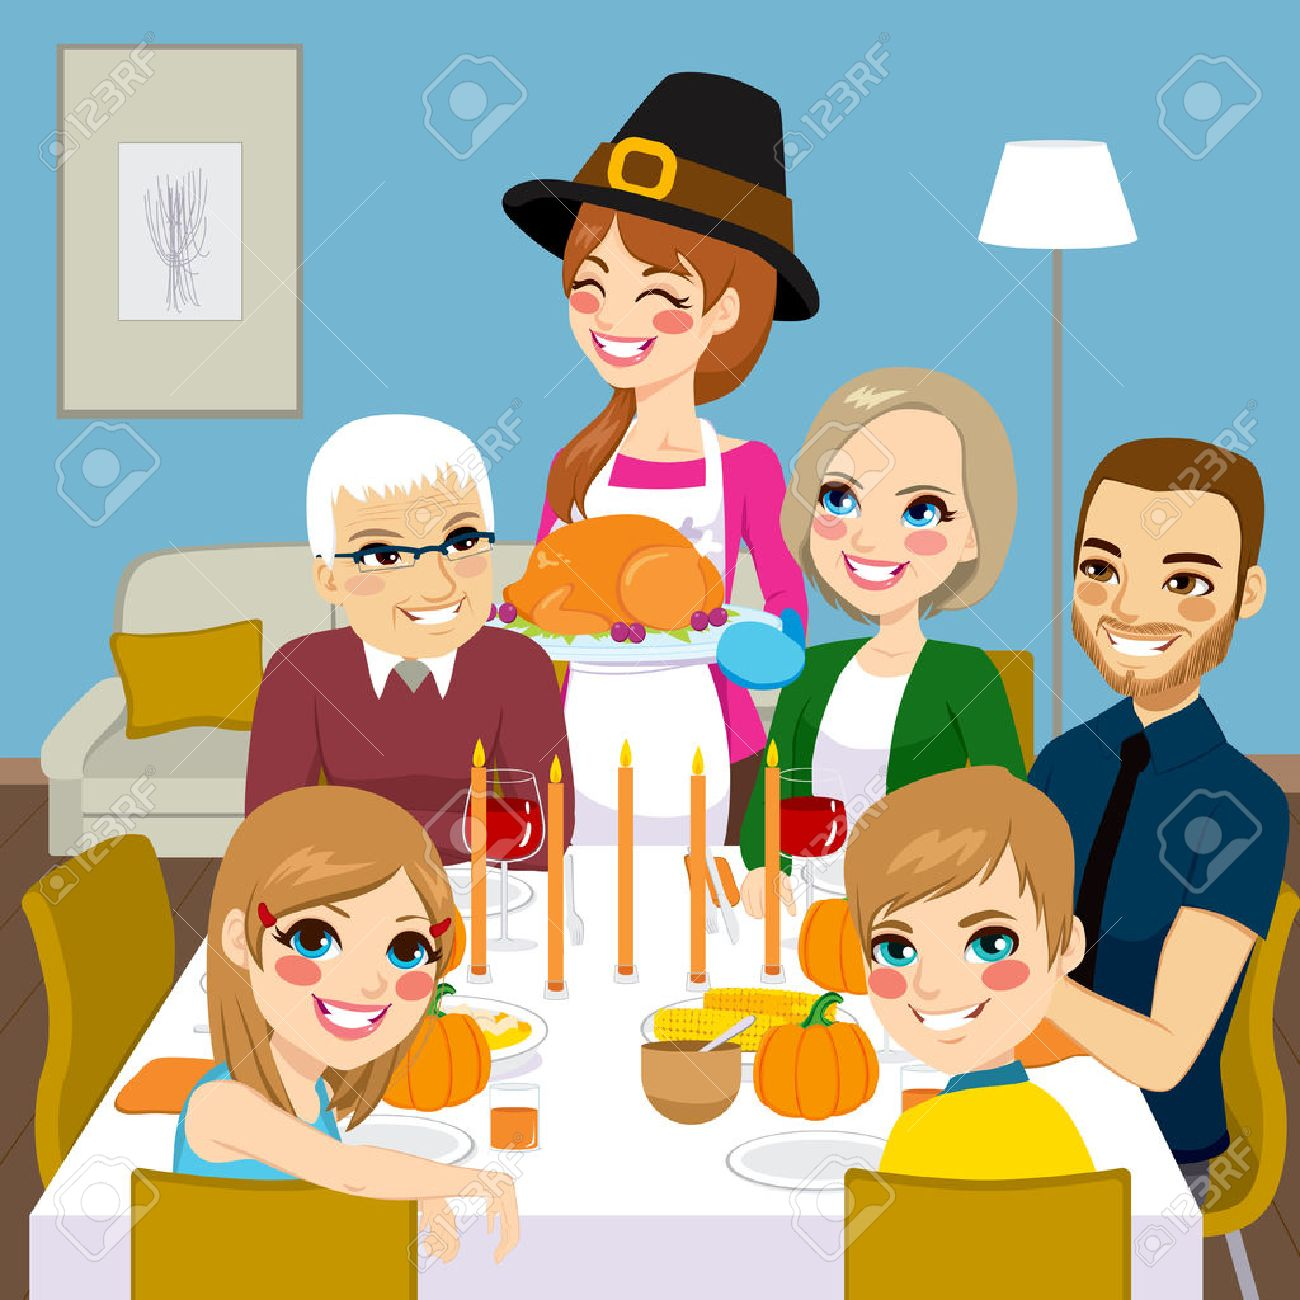 Happy Family Having Thanksgiving Dinner Together With Mom Serving Traditional Roasted Turkey Stock Vector